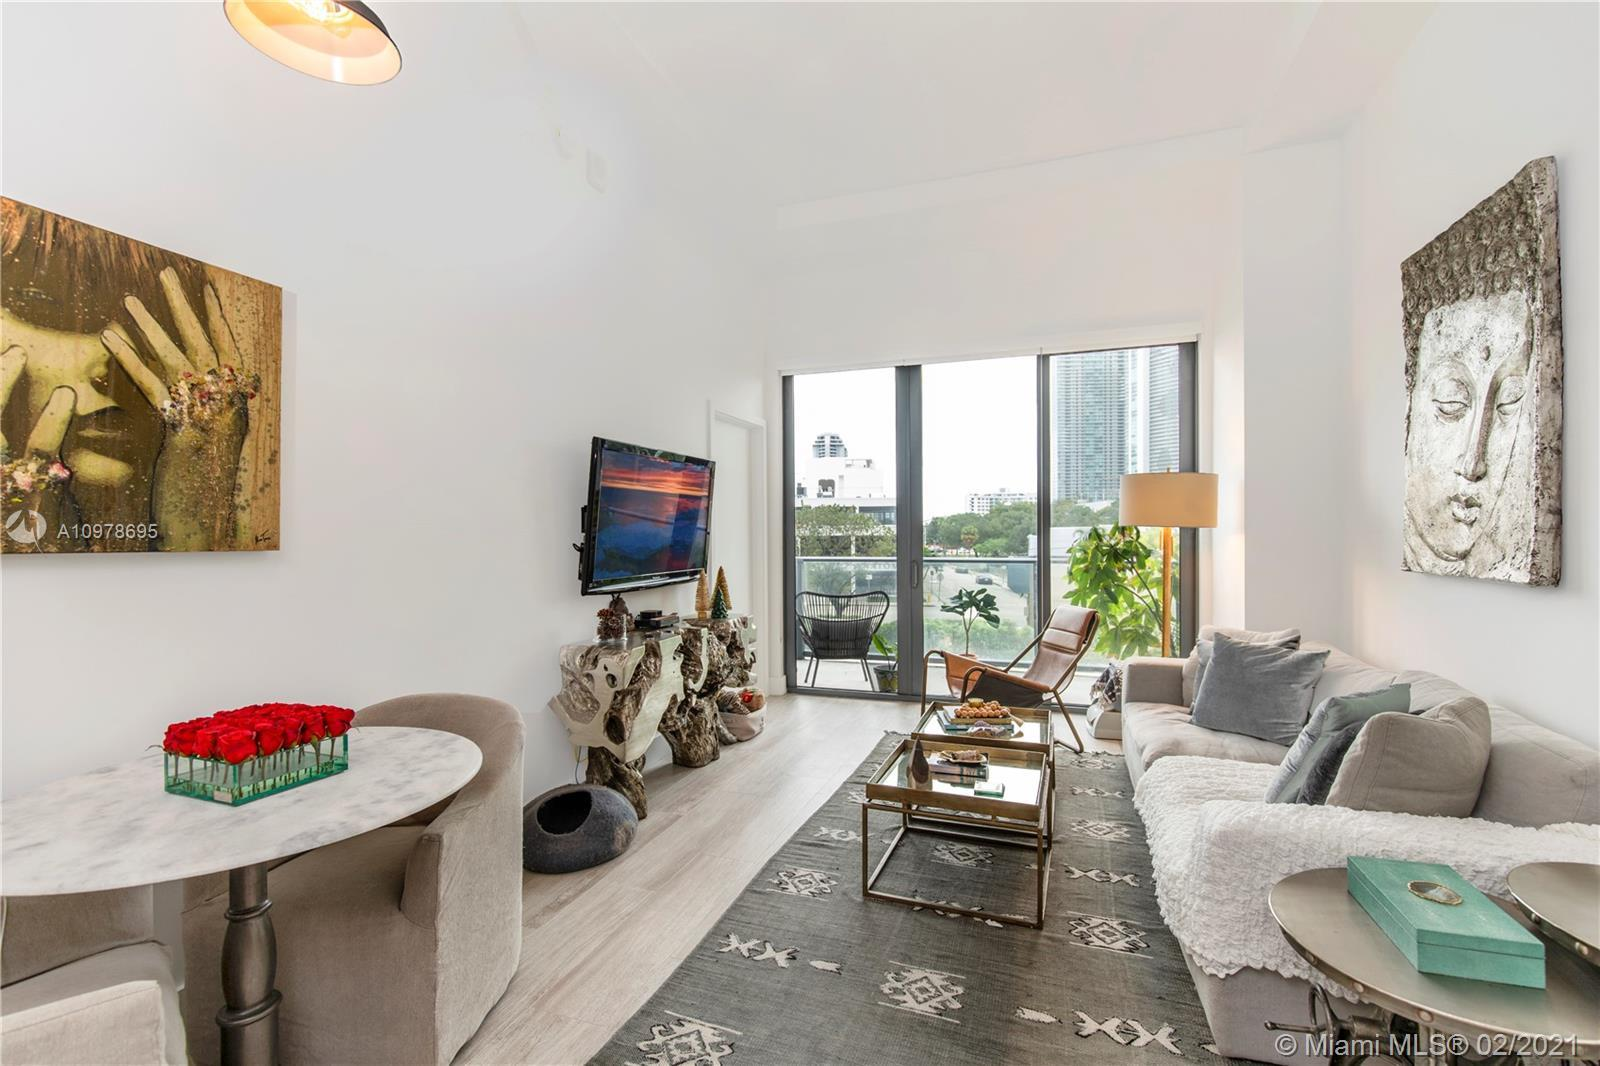 You'll love this 1 bedroom plus DEN, 1 bathroom apartment located in Midtown - One of the hottest an